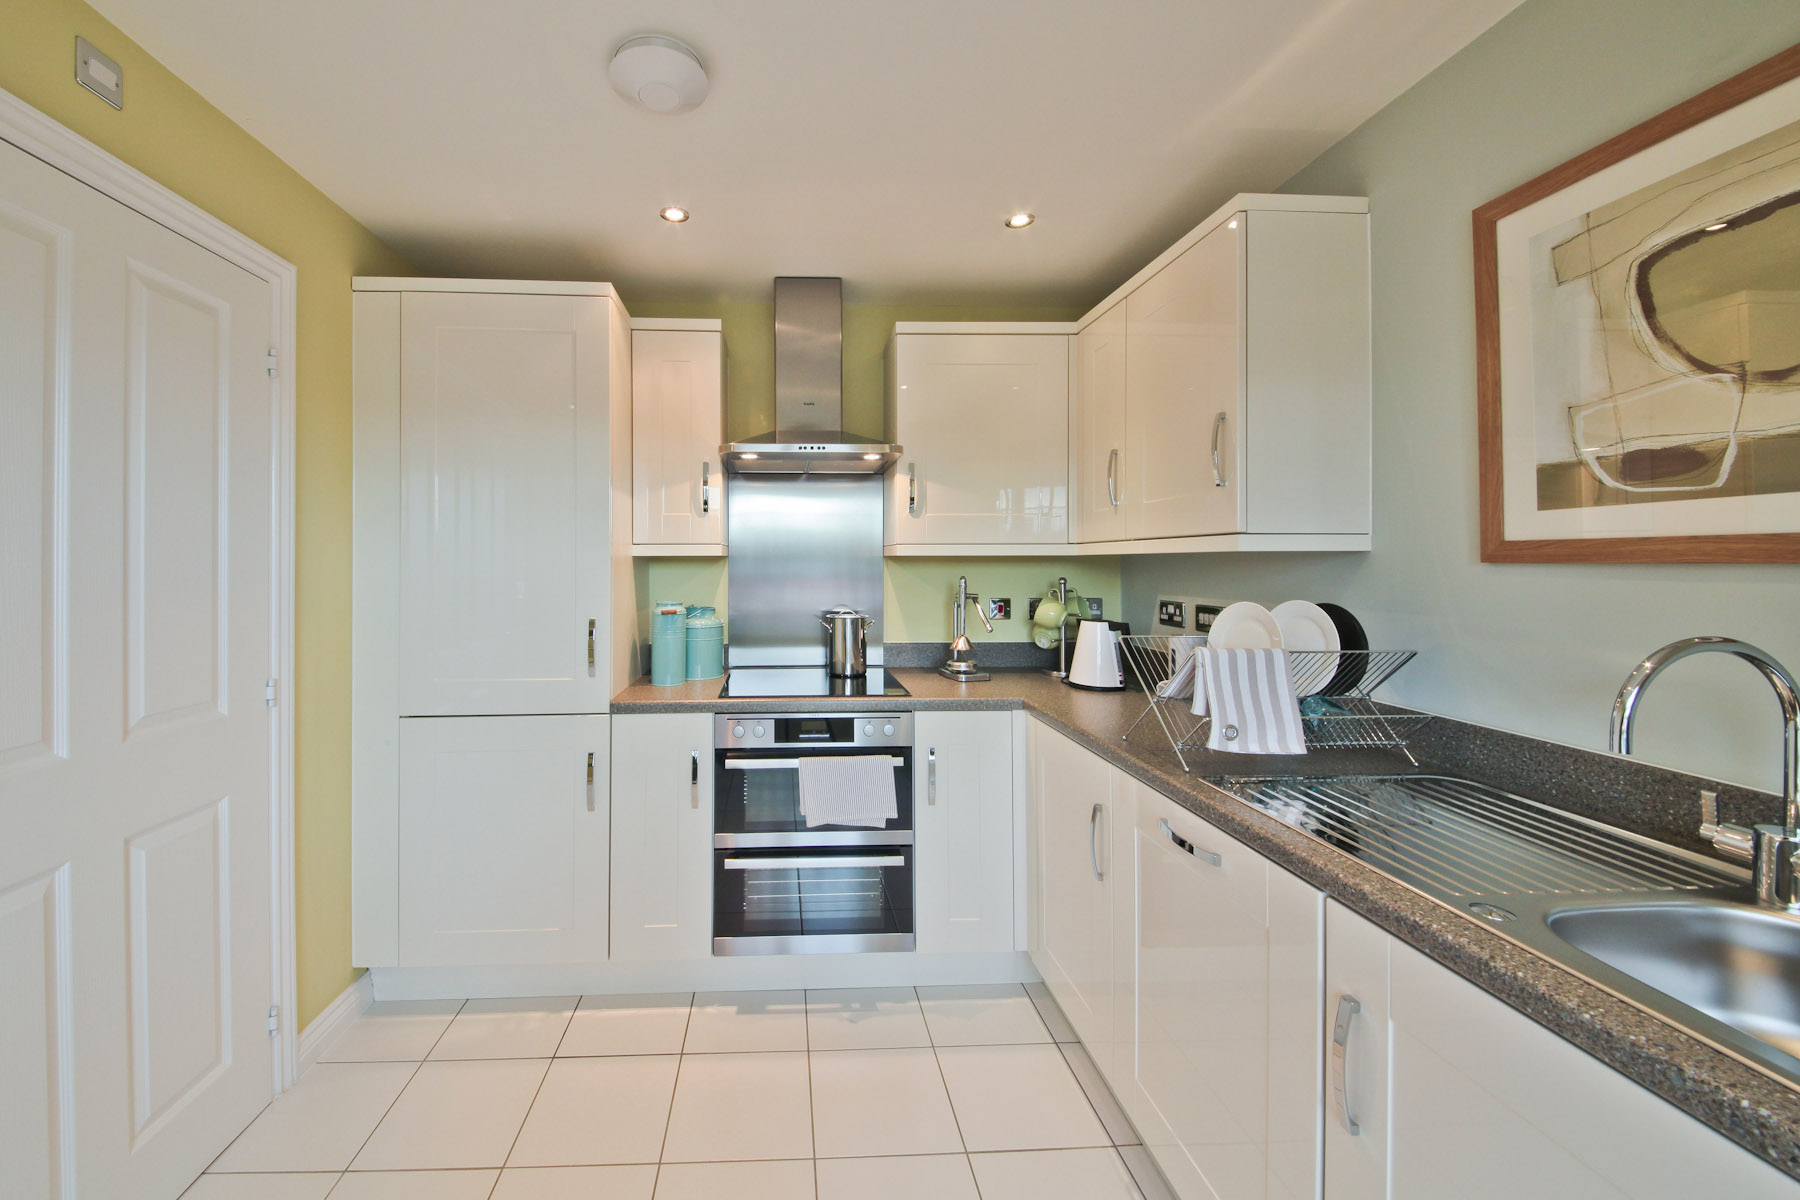 TW Exeter - Plumb Park - Seaton example kitchen